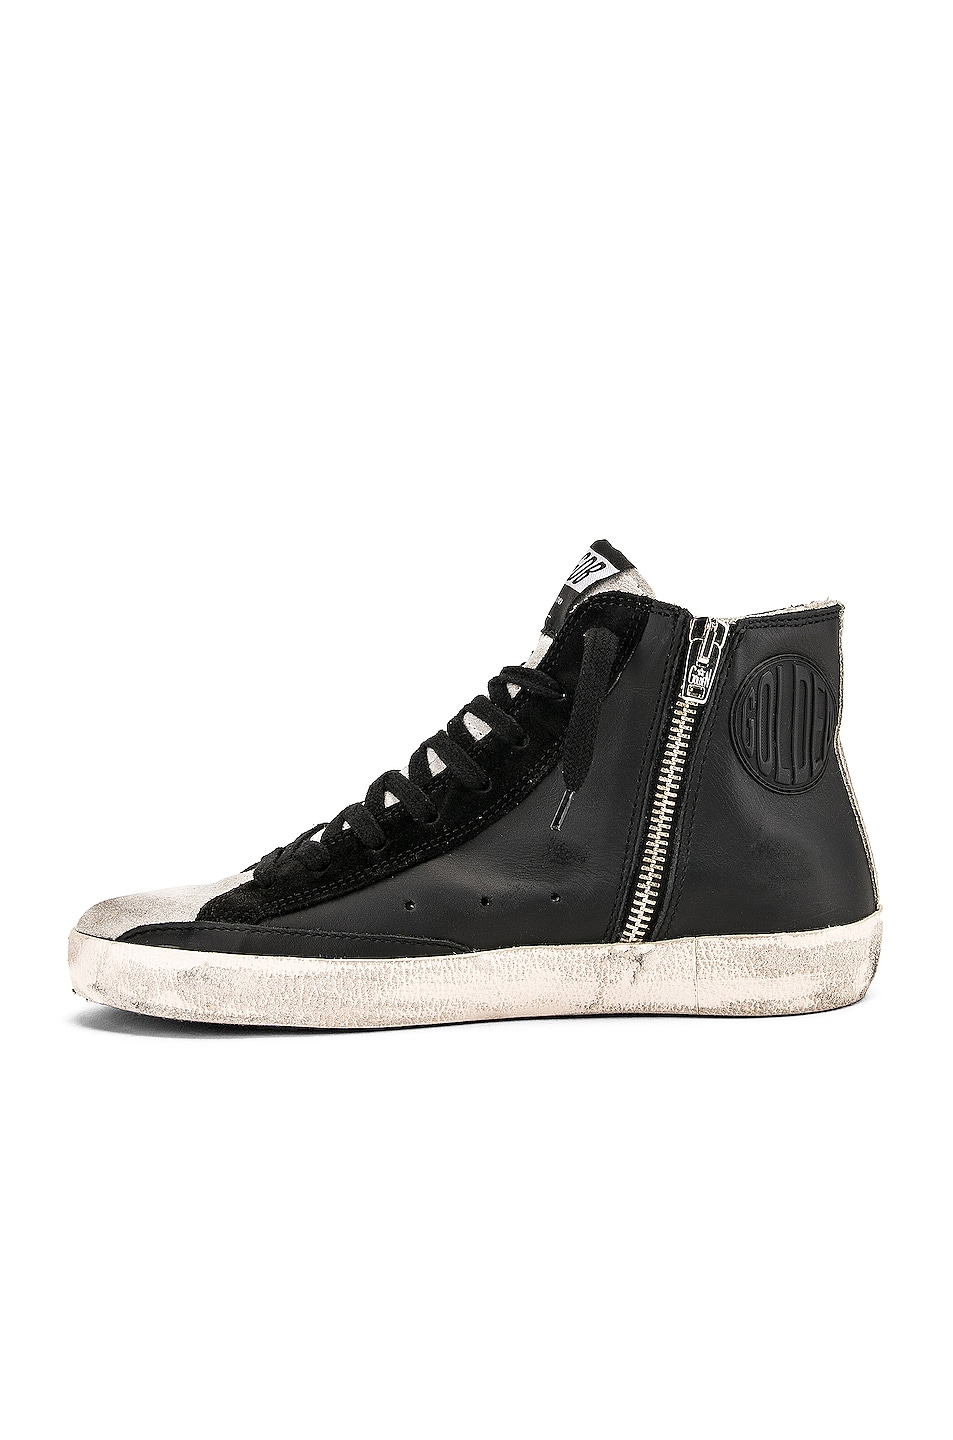 Image 5 of Golden Goose Francy Sneakers in Black Paillettes